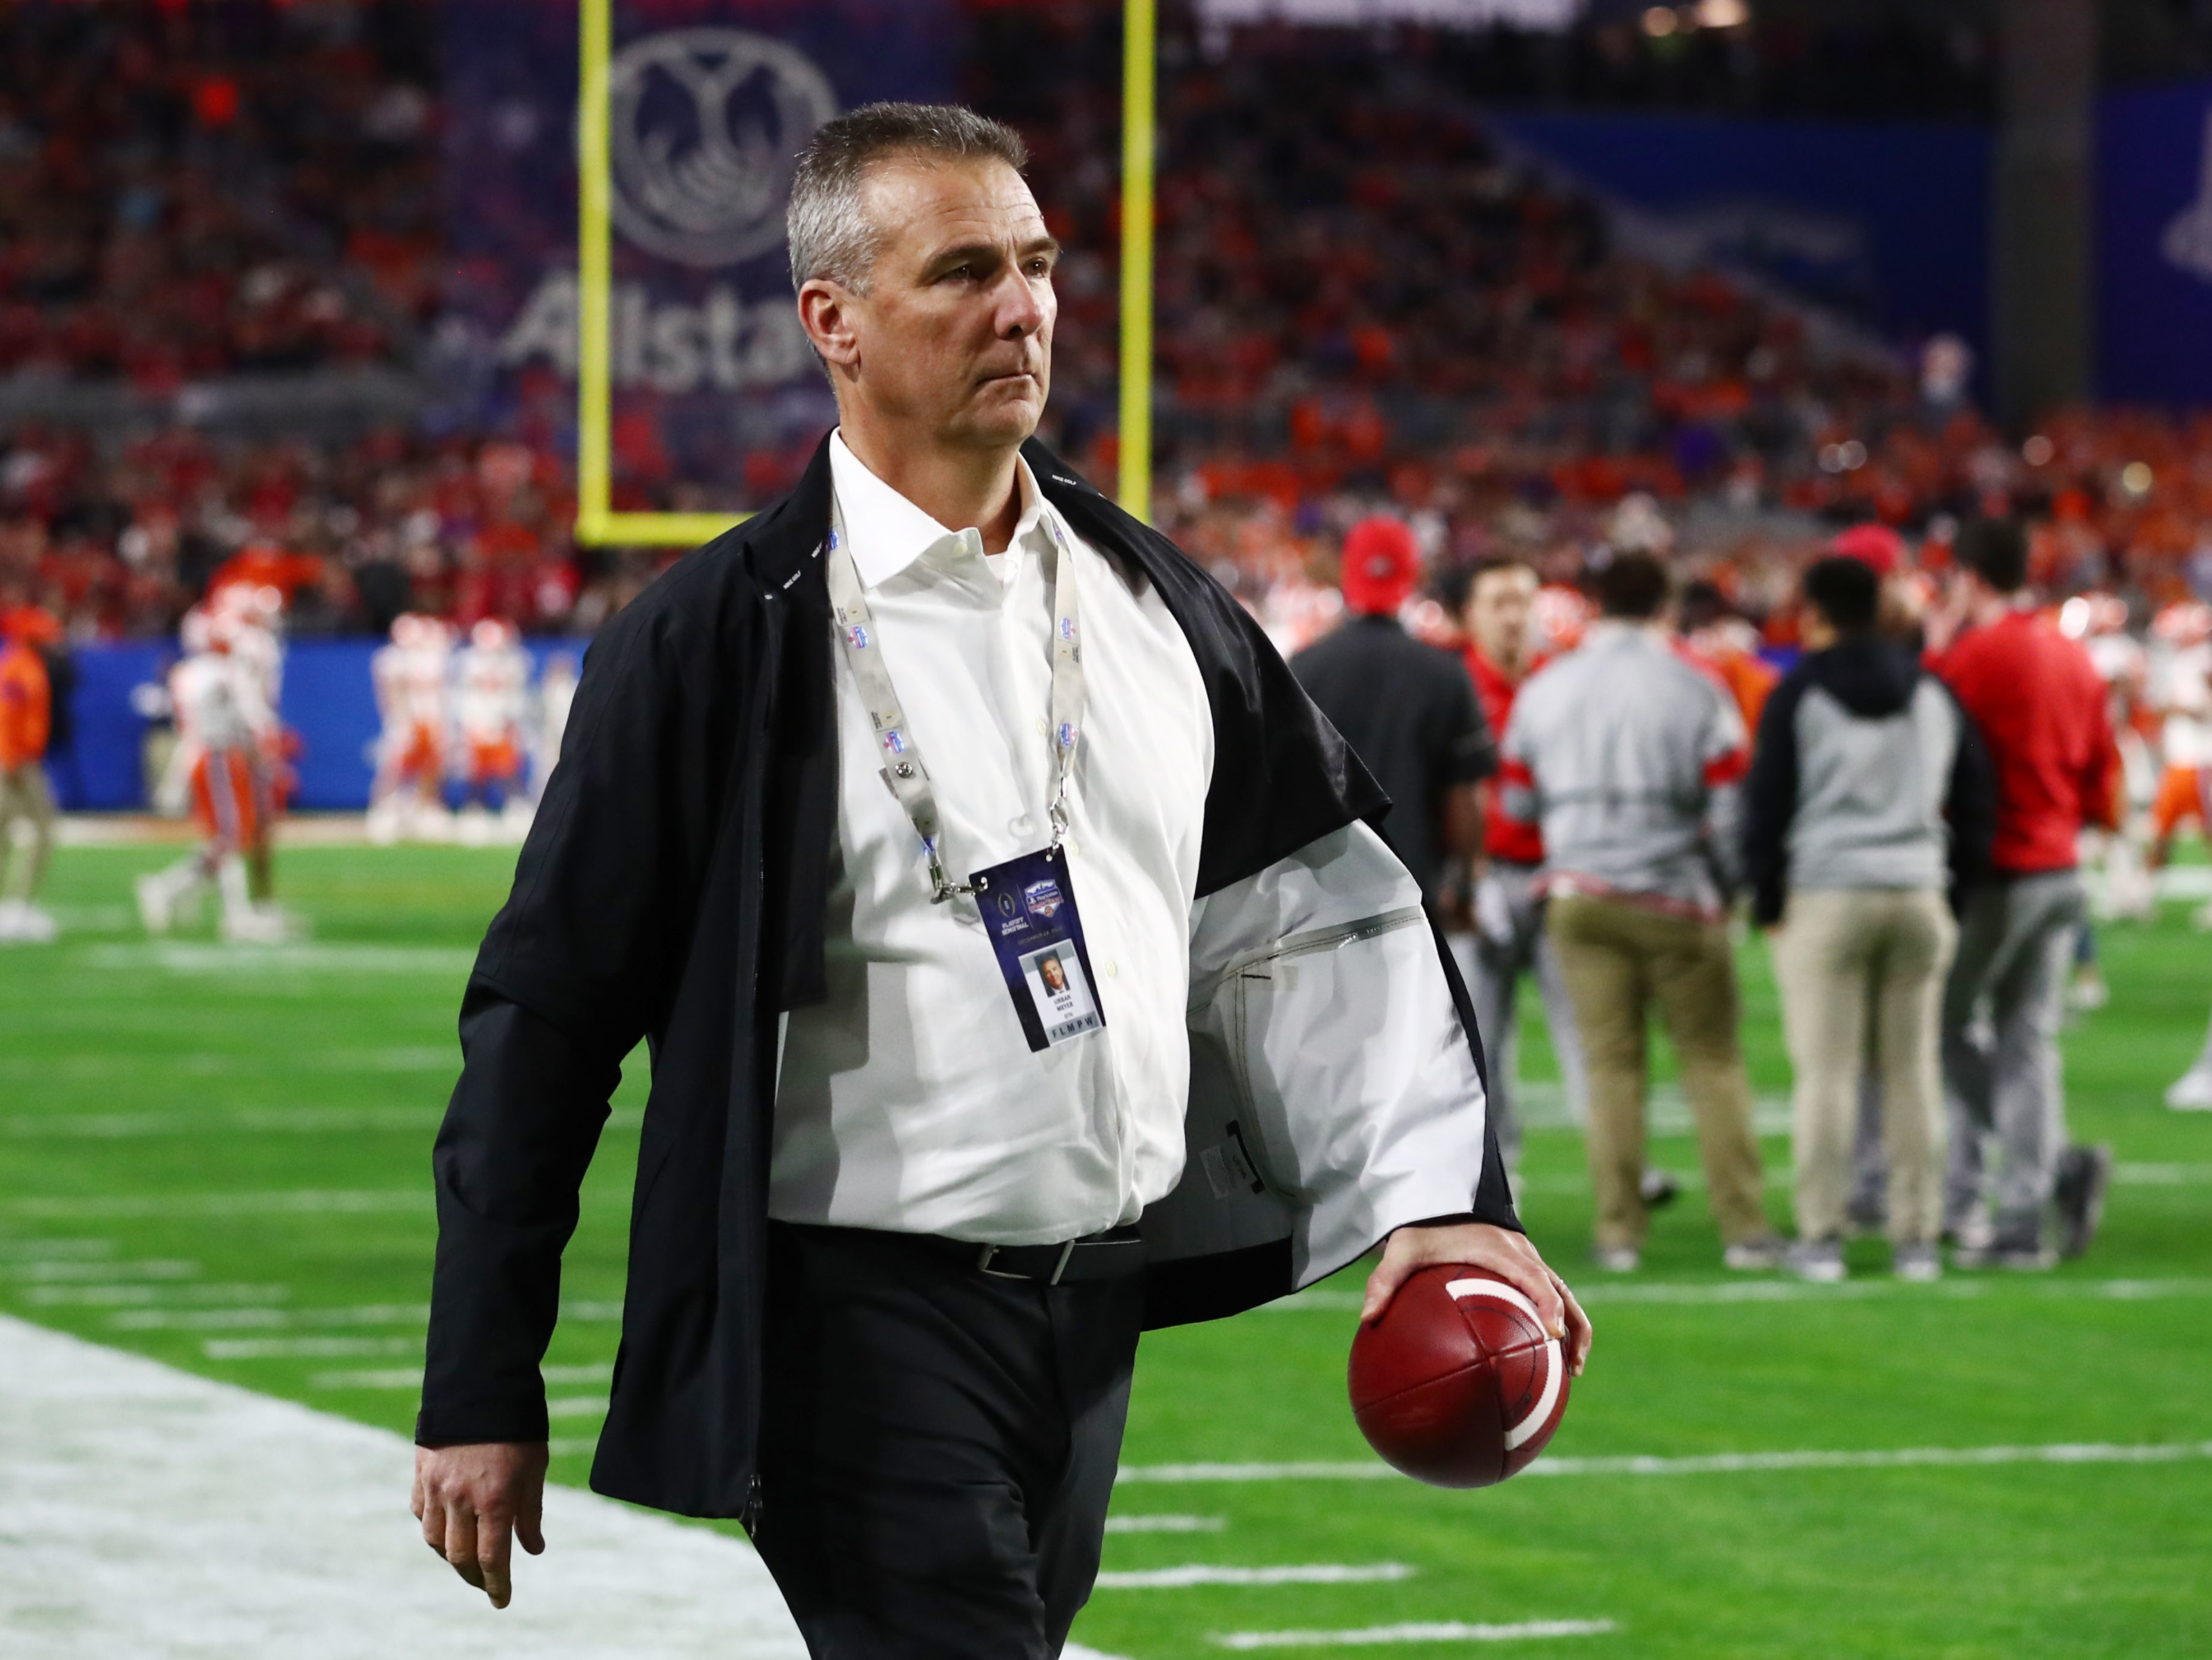 Should Texas Football Roll Out The Red Carpet For Urban Meyer